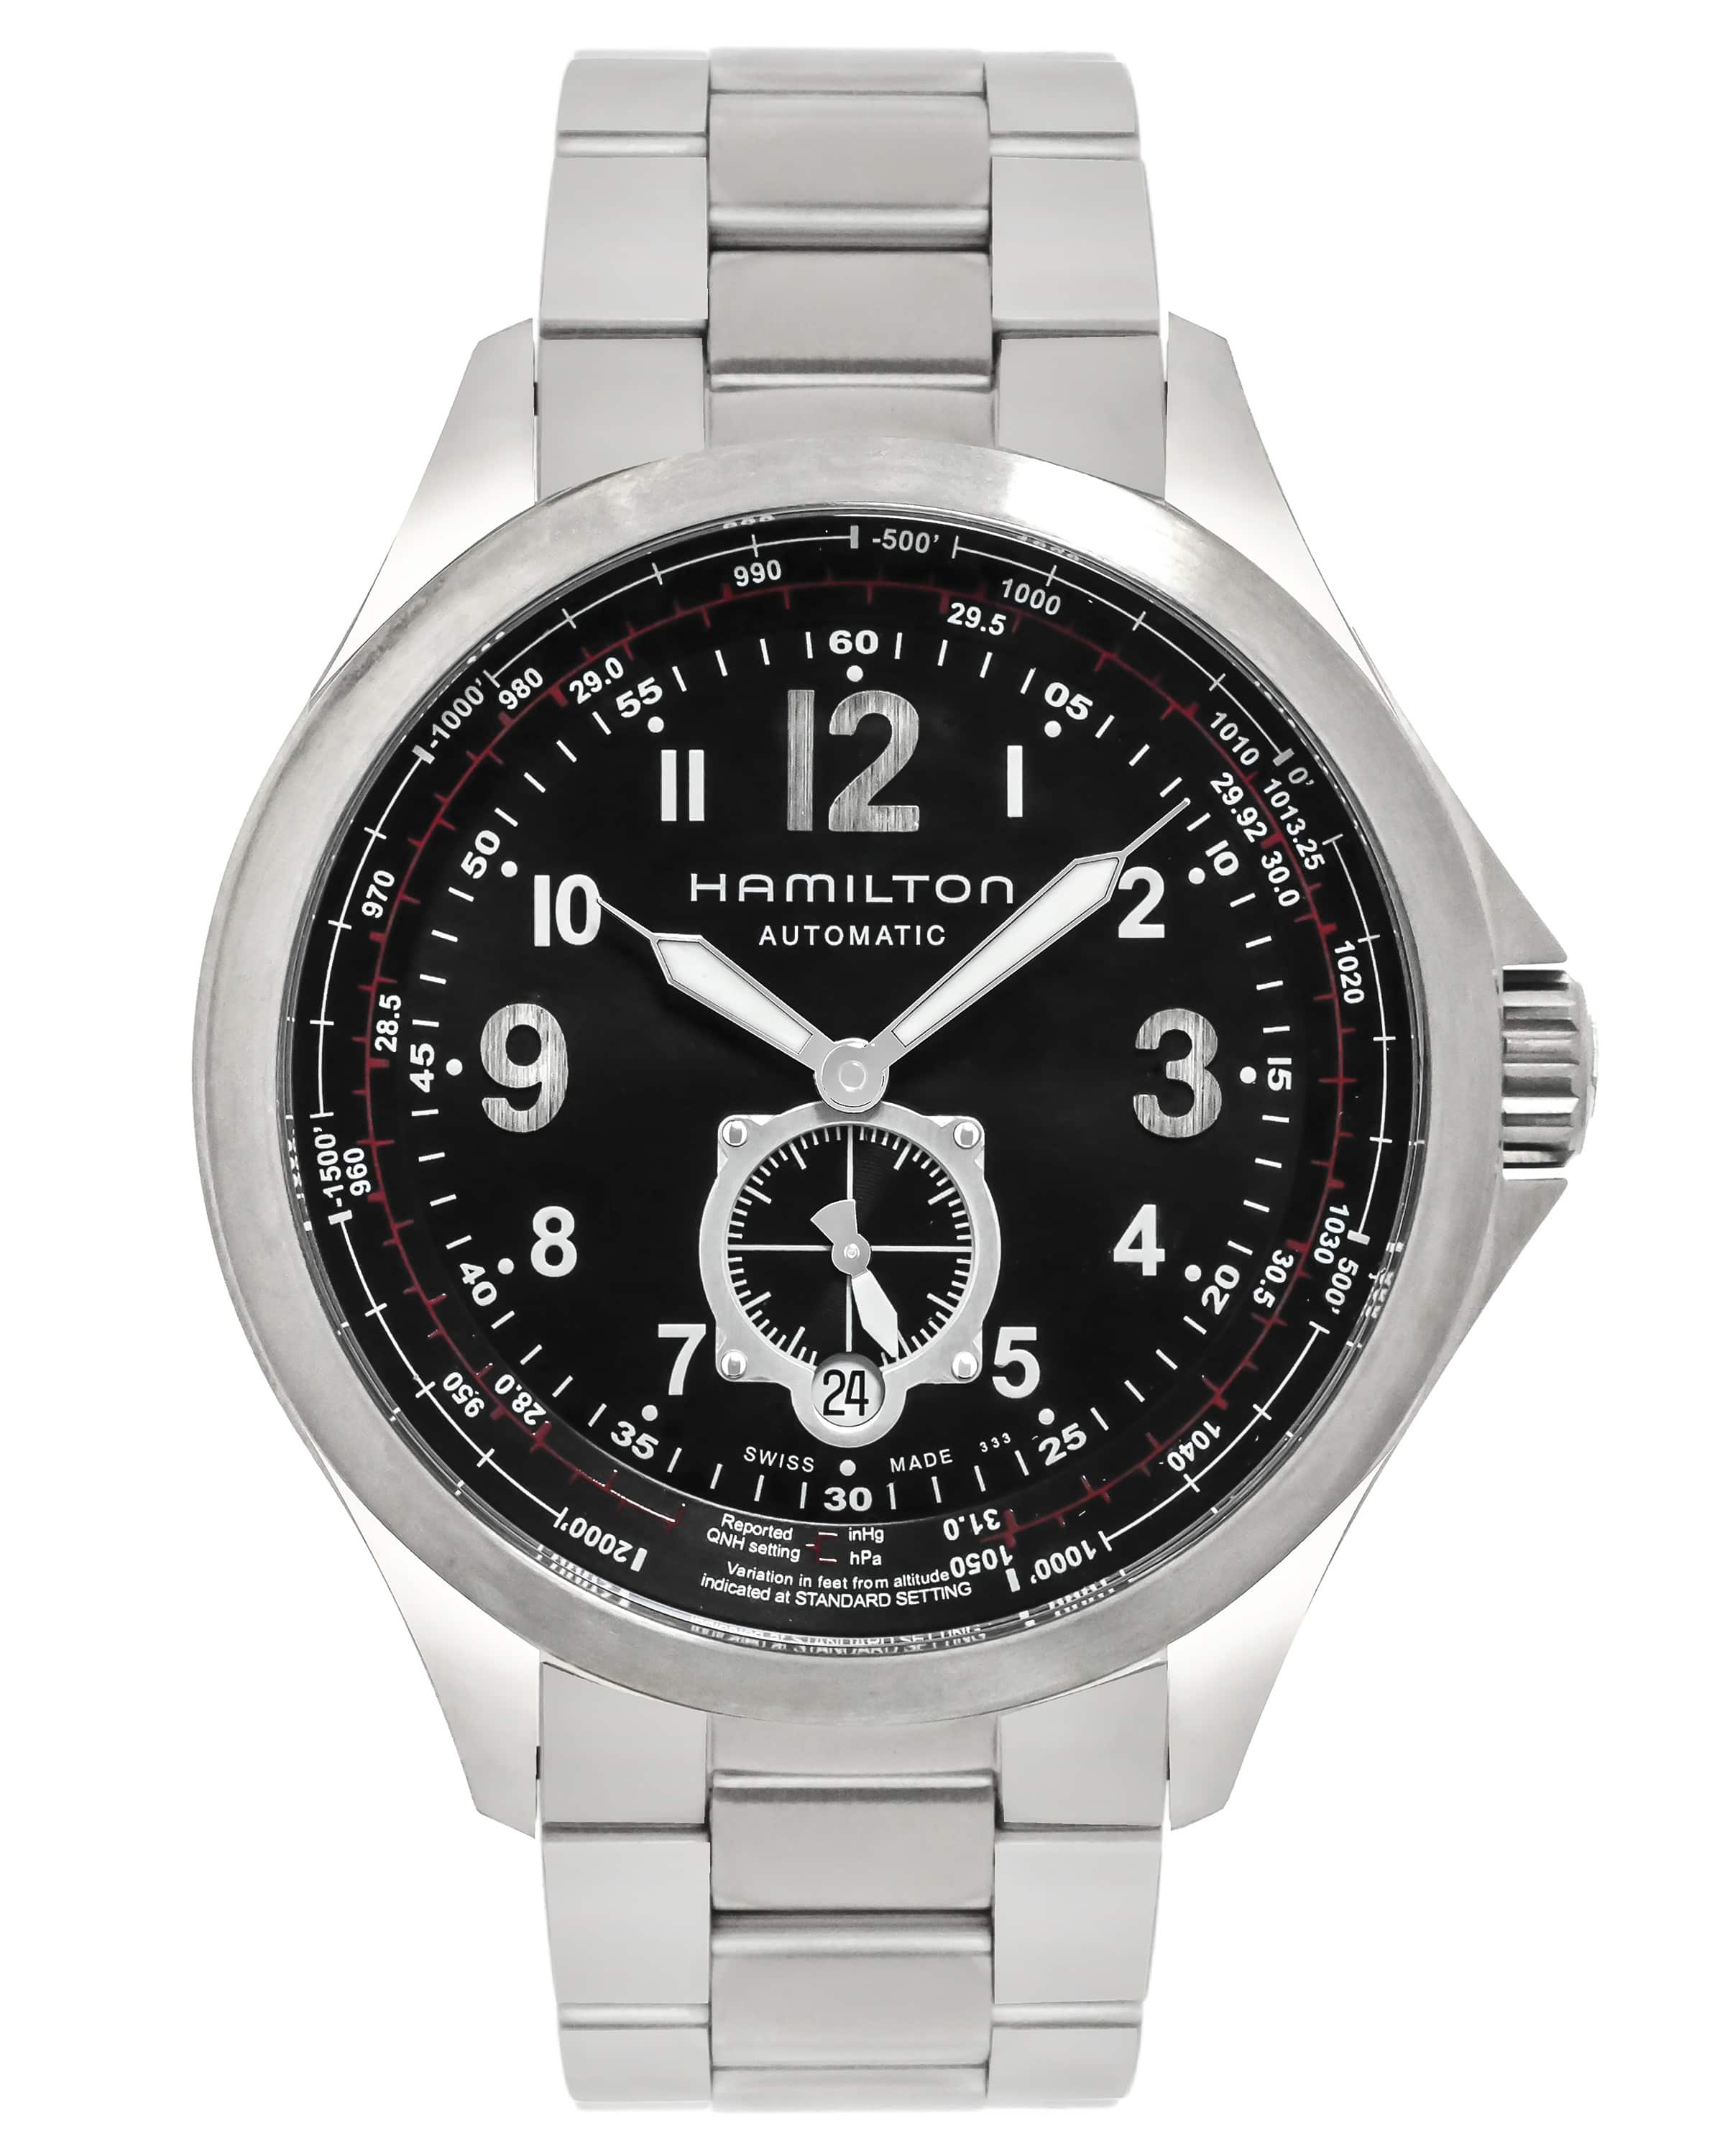 Hamilton Khaki Aviation Automatic Watch w/ Sub Seconds $395 + free s/h